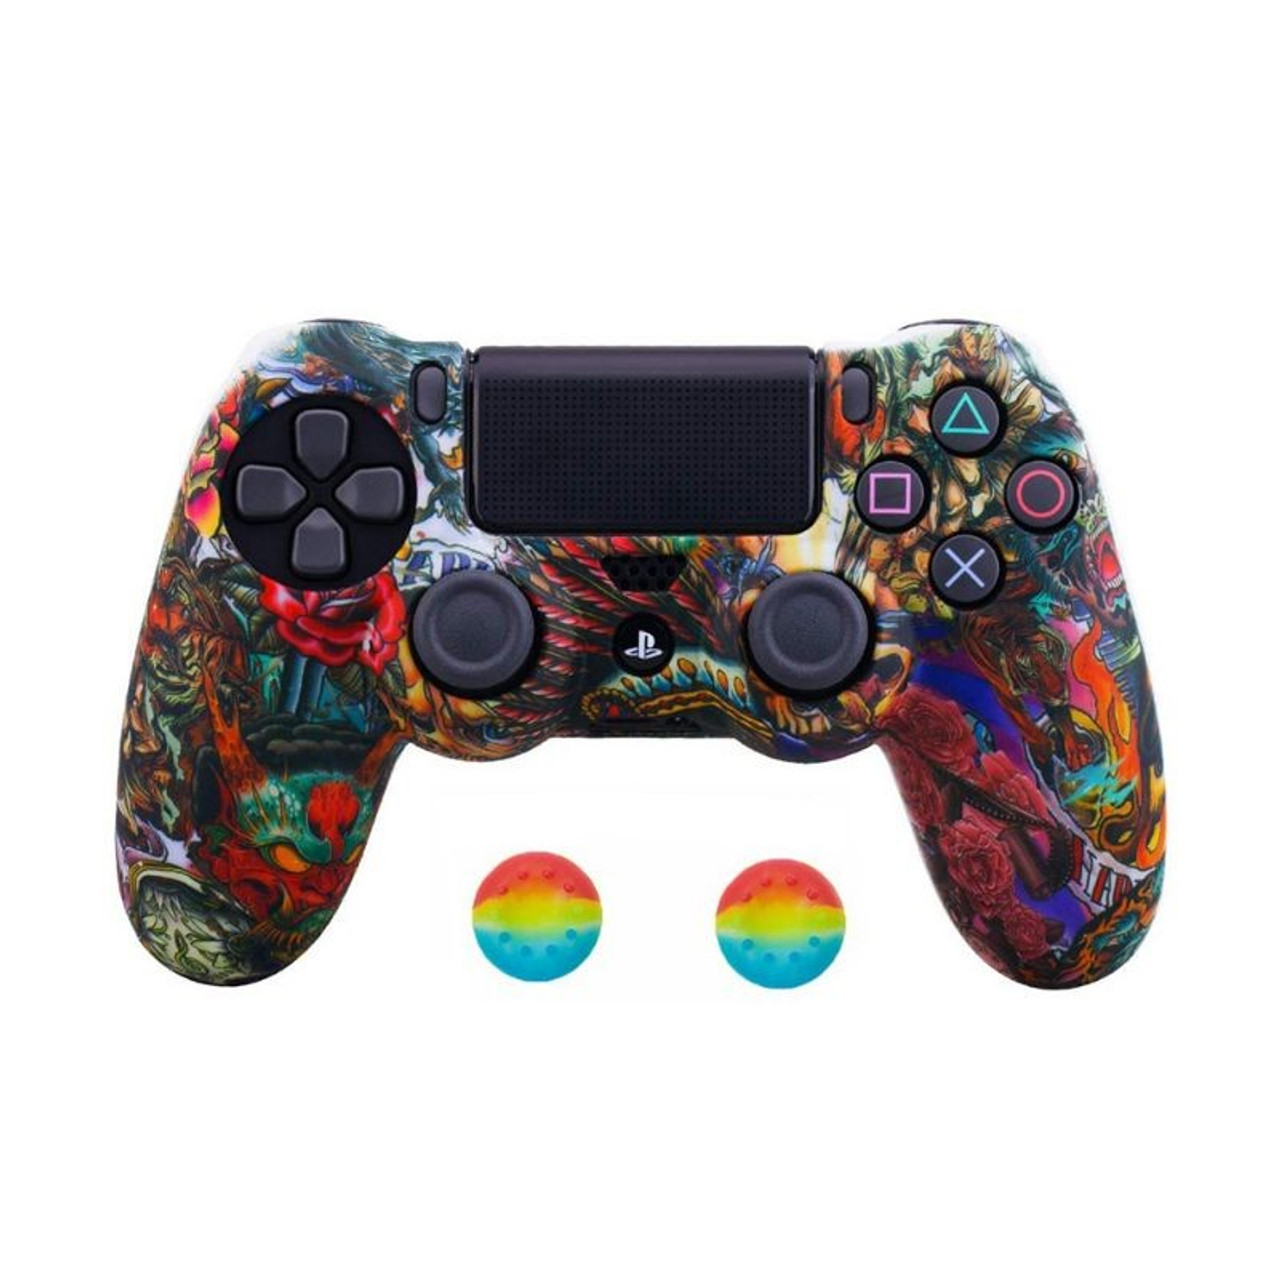 PS4 Silicone Cover and Thumb Grip Set